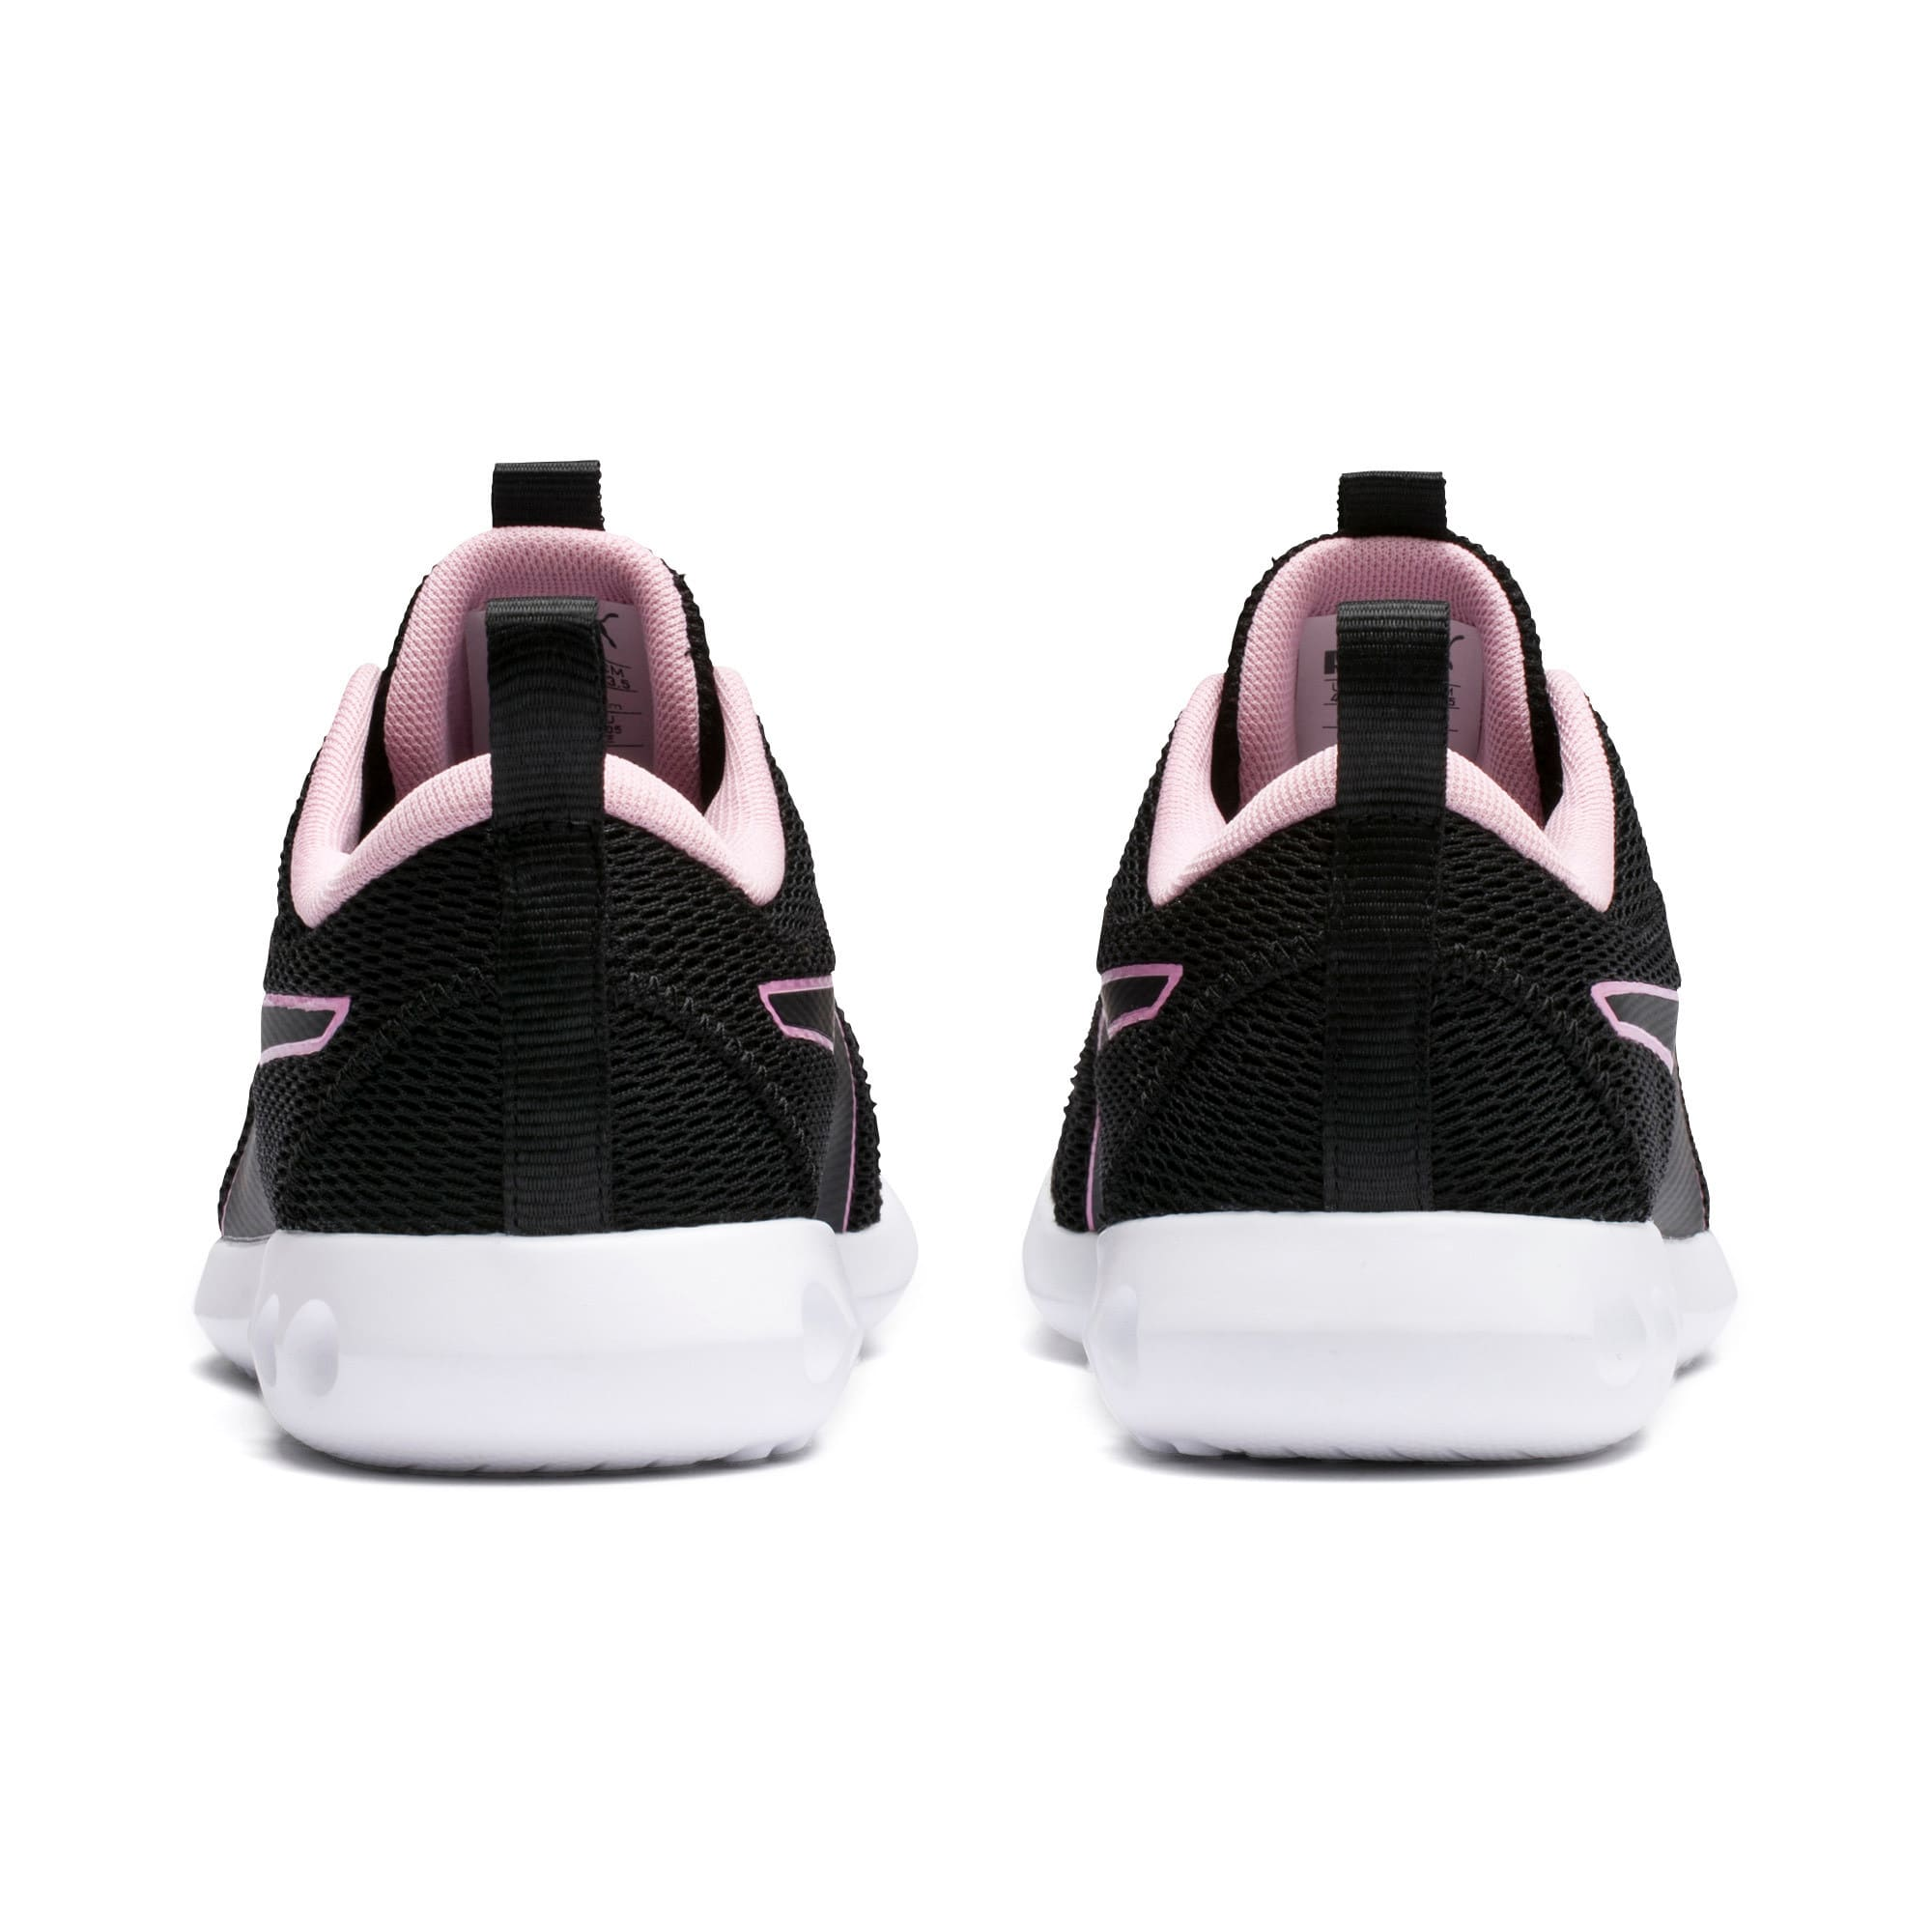 Thumbnail 3 of Carson 2 New Core Women's Training Shoes, Puma Black-Pale Pink, medium